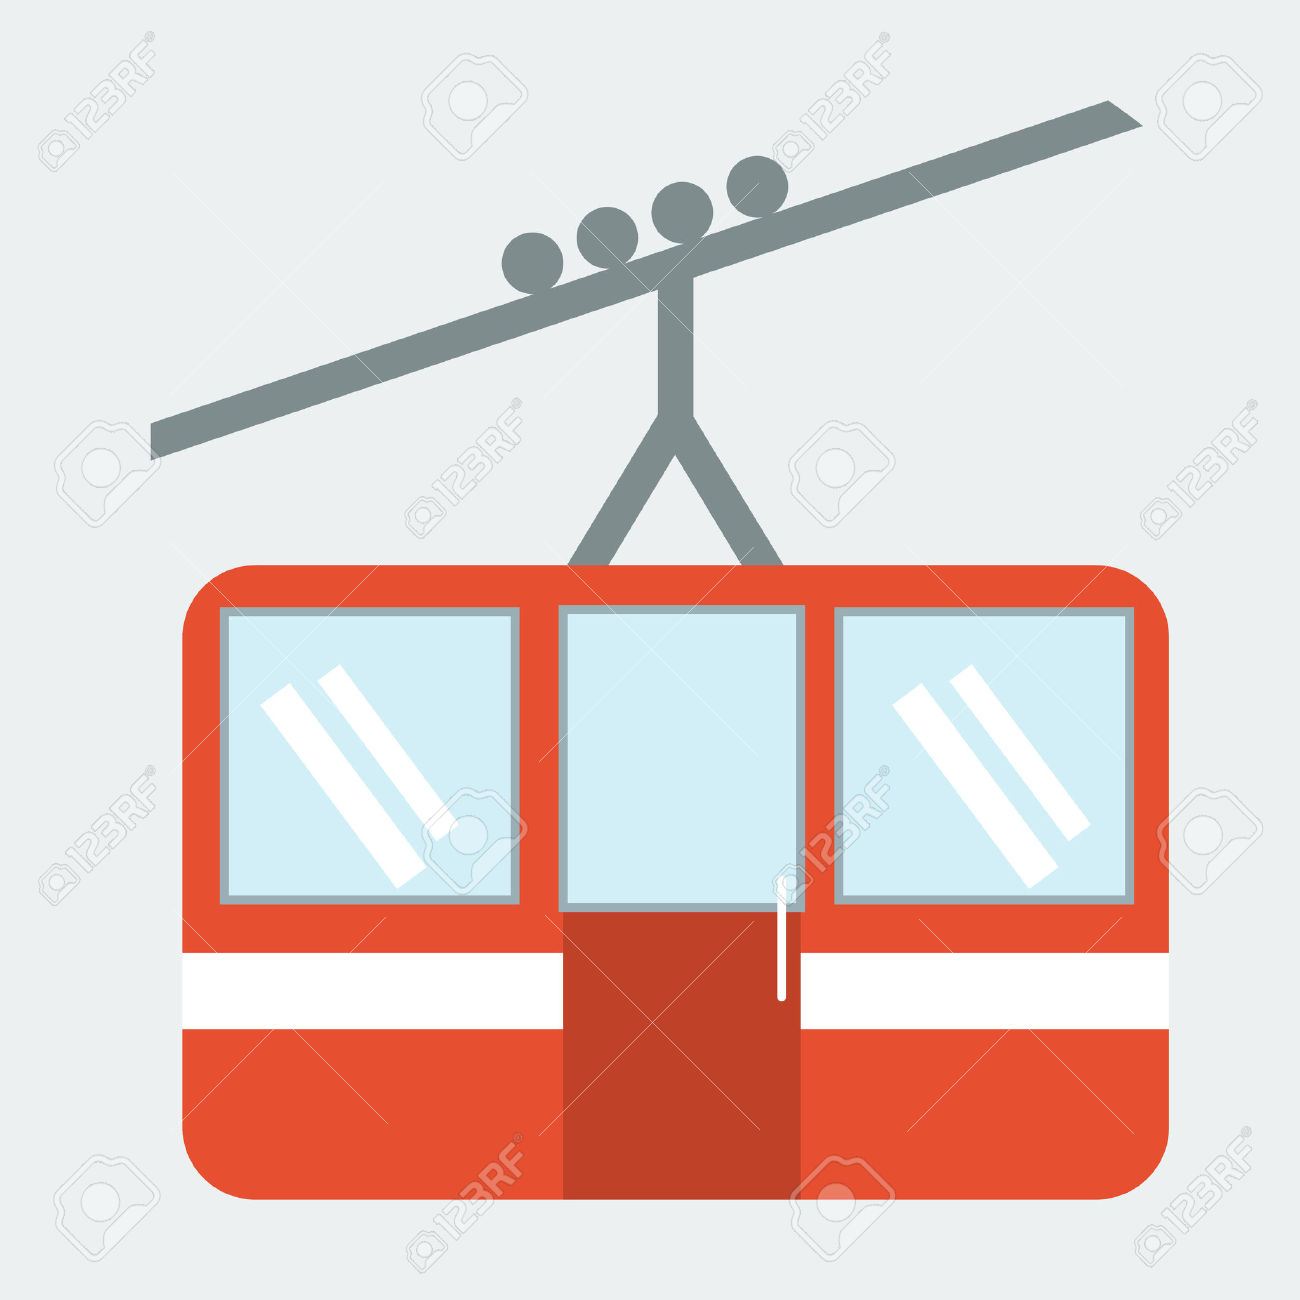 Funicular Cable Car Illustration Royalty Free Cliparts, Vectors.